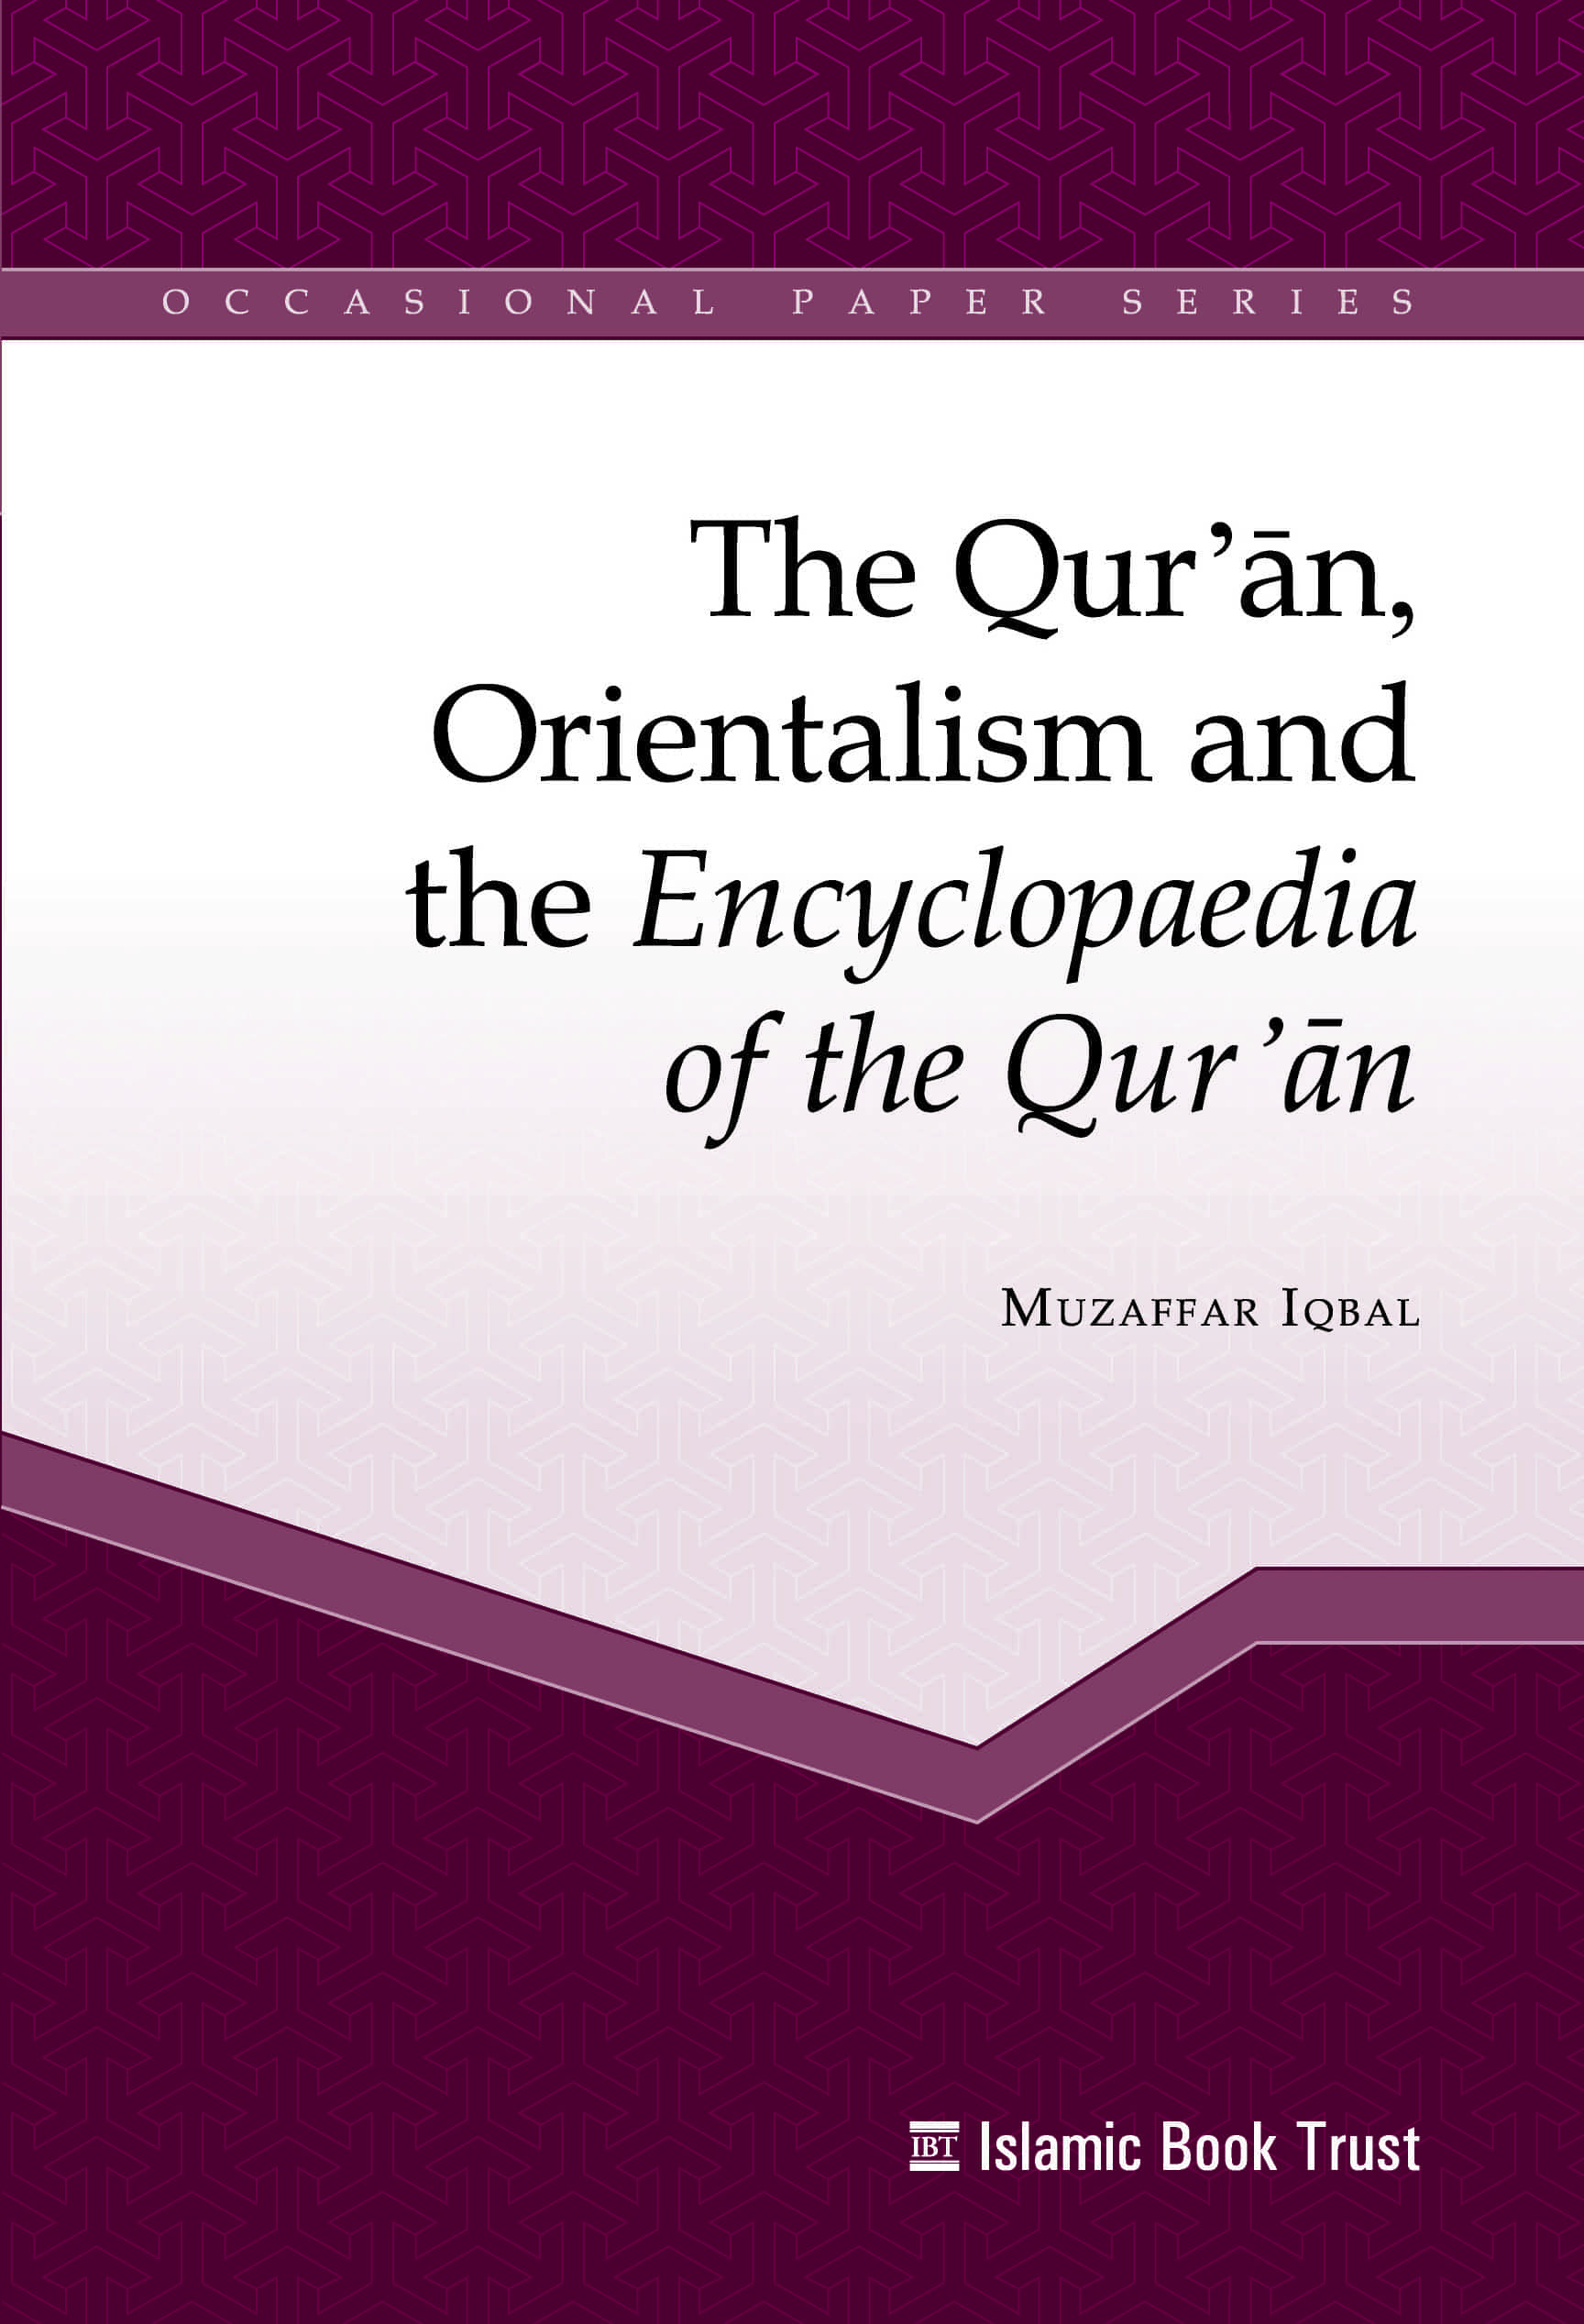 The Qur'an Orientalism and the Encyclopaedia of the Qur'an